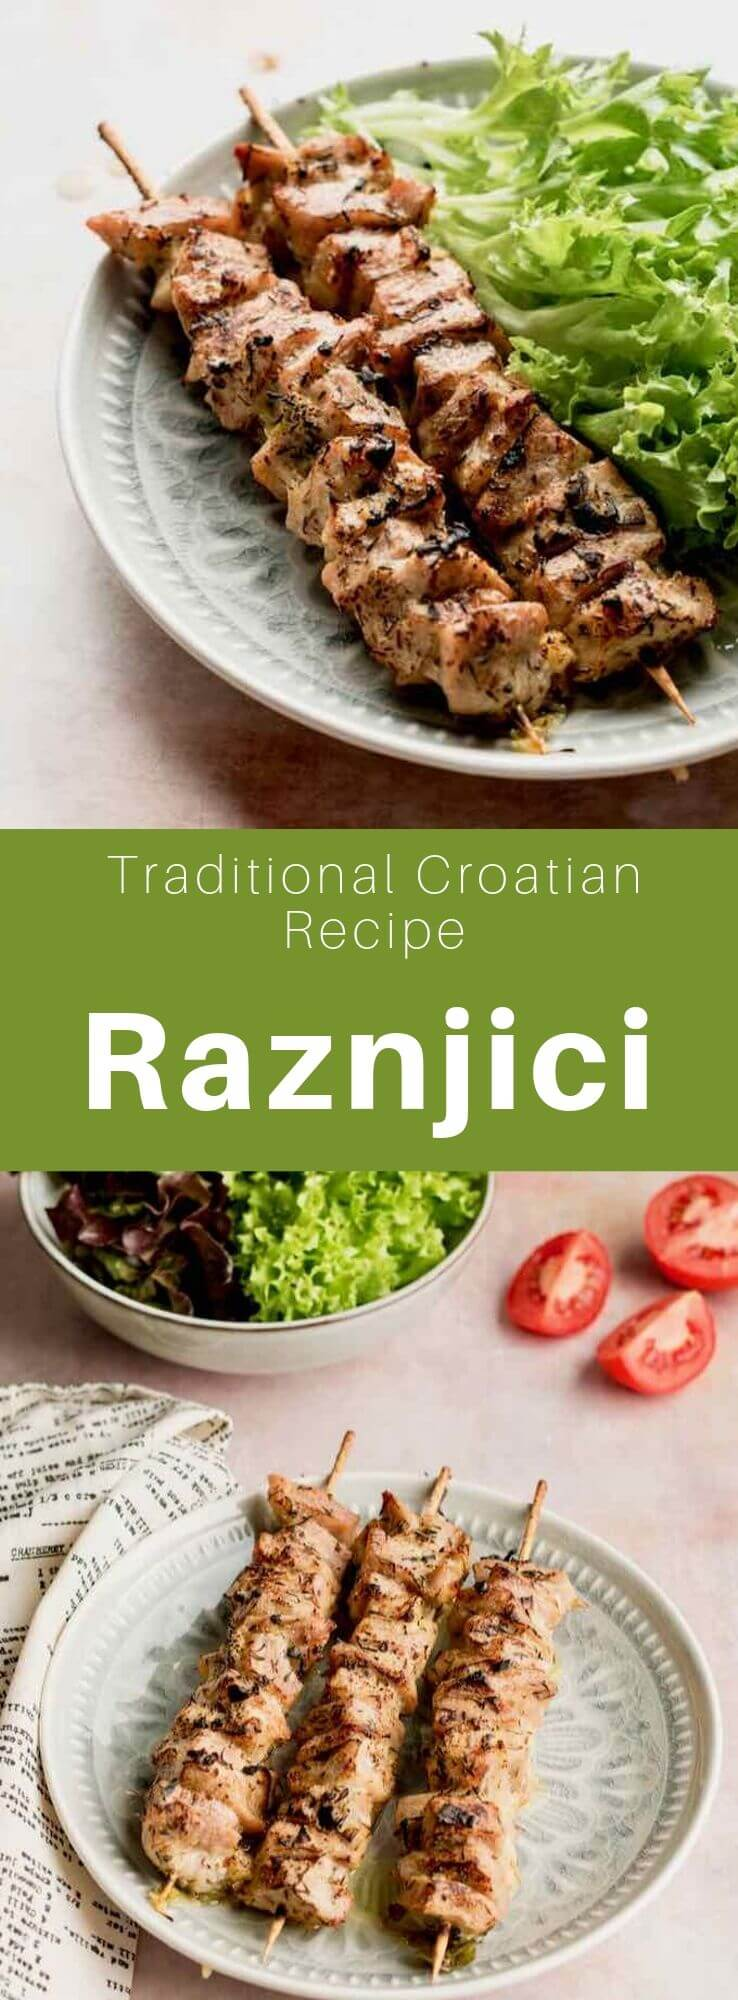 Ražnjići is a popular Balkan dish made from pork that is grilled on a barbecue. It is similar to Greek souvlaki and Turkish şaşlık. #Balkans #BalkanCuisine #BalkanRecipe #WorldCuisine #196flavors